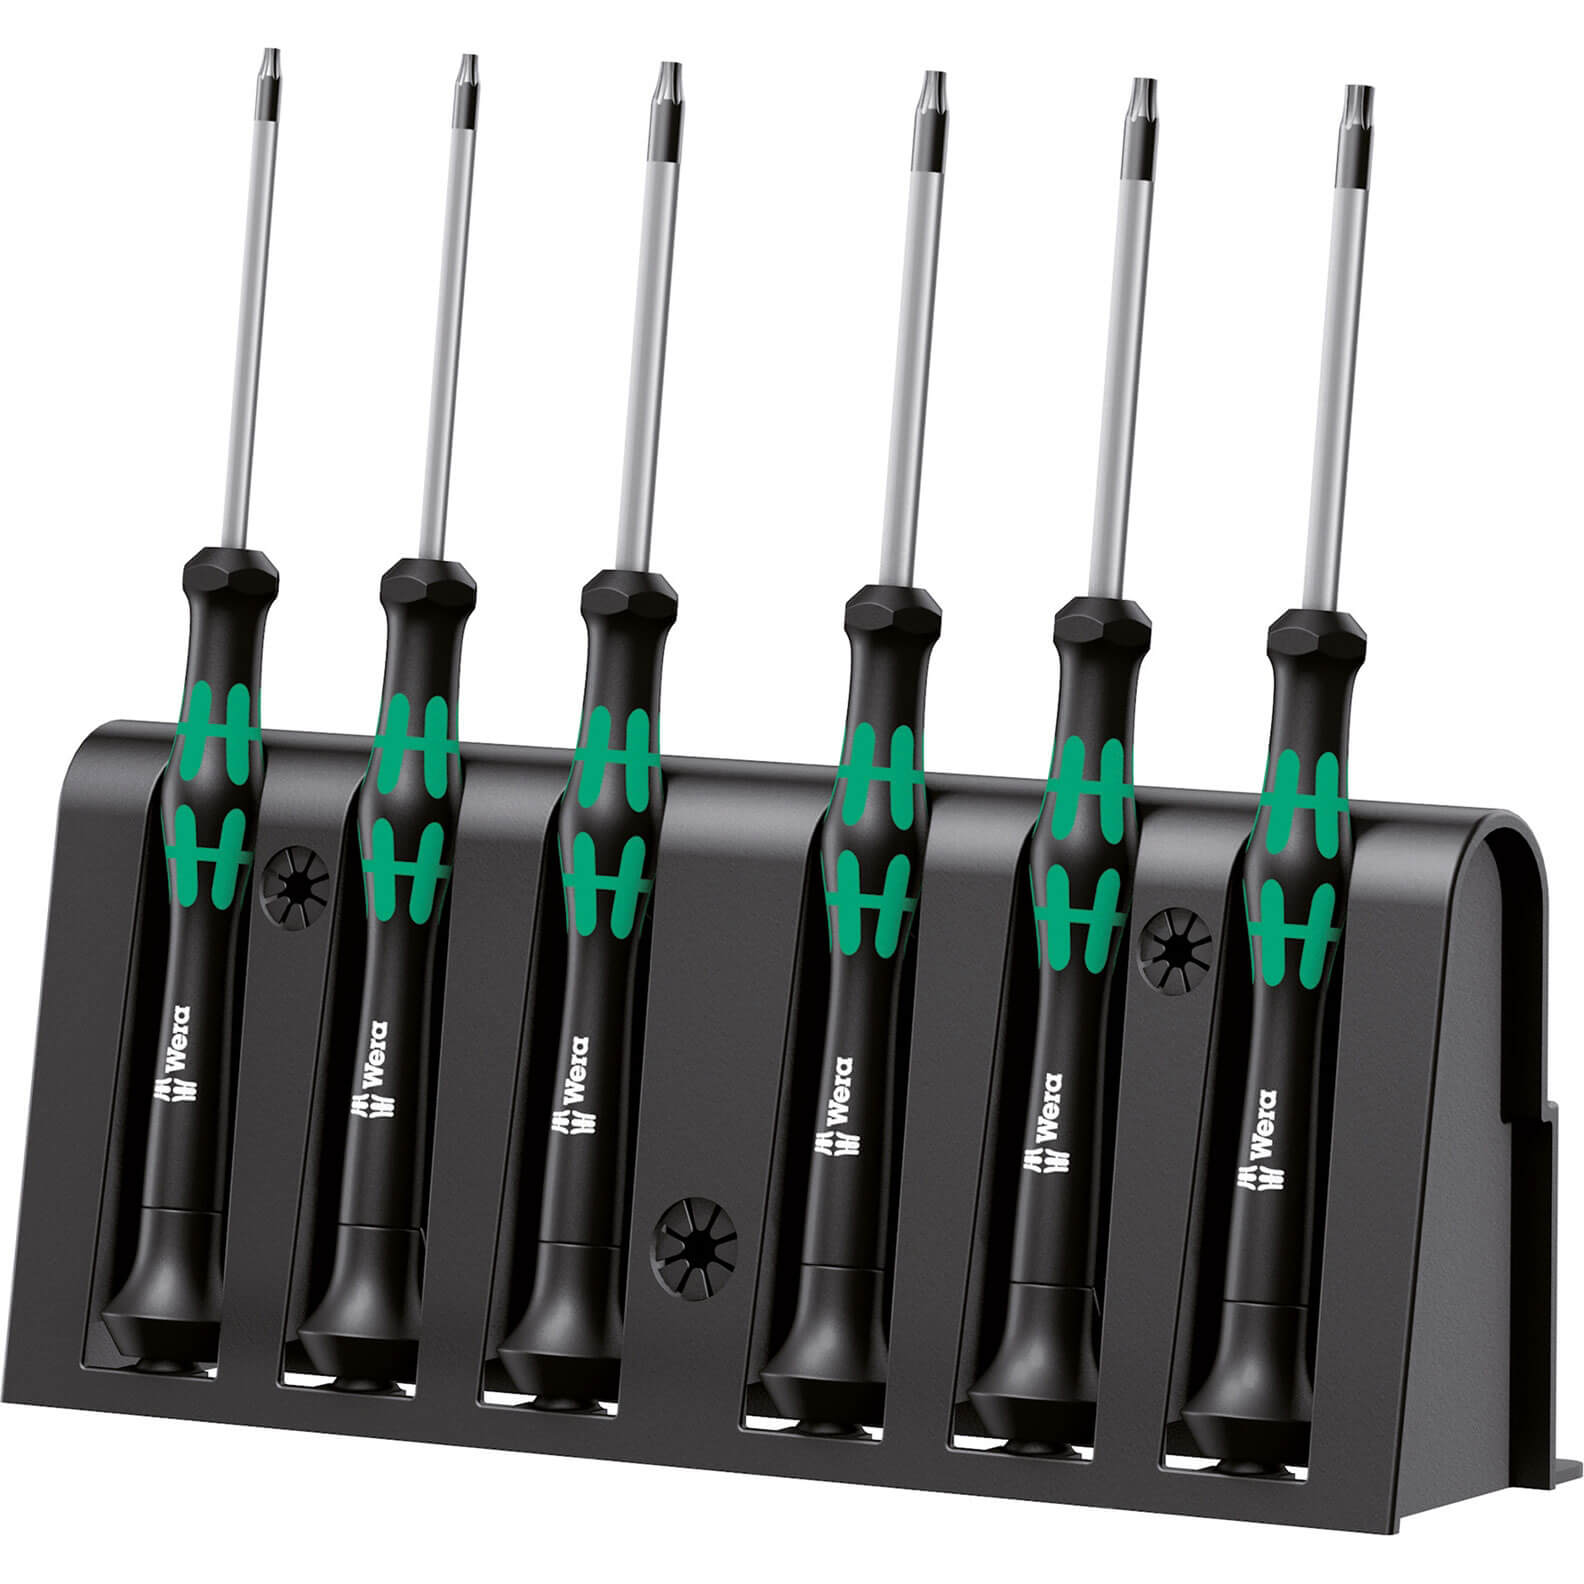 Image of Wera 6 Piece Kraftform Micro 6 Piece Security Torx Screwdriver Set